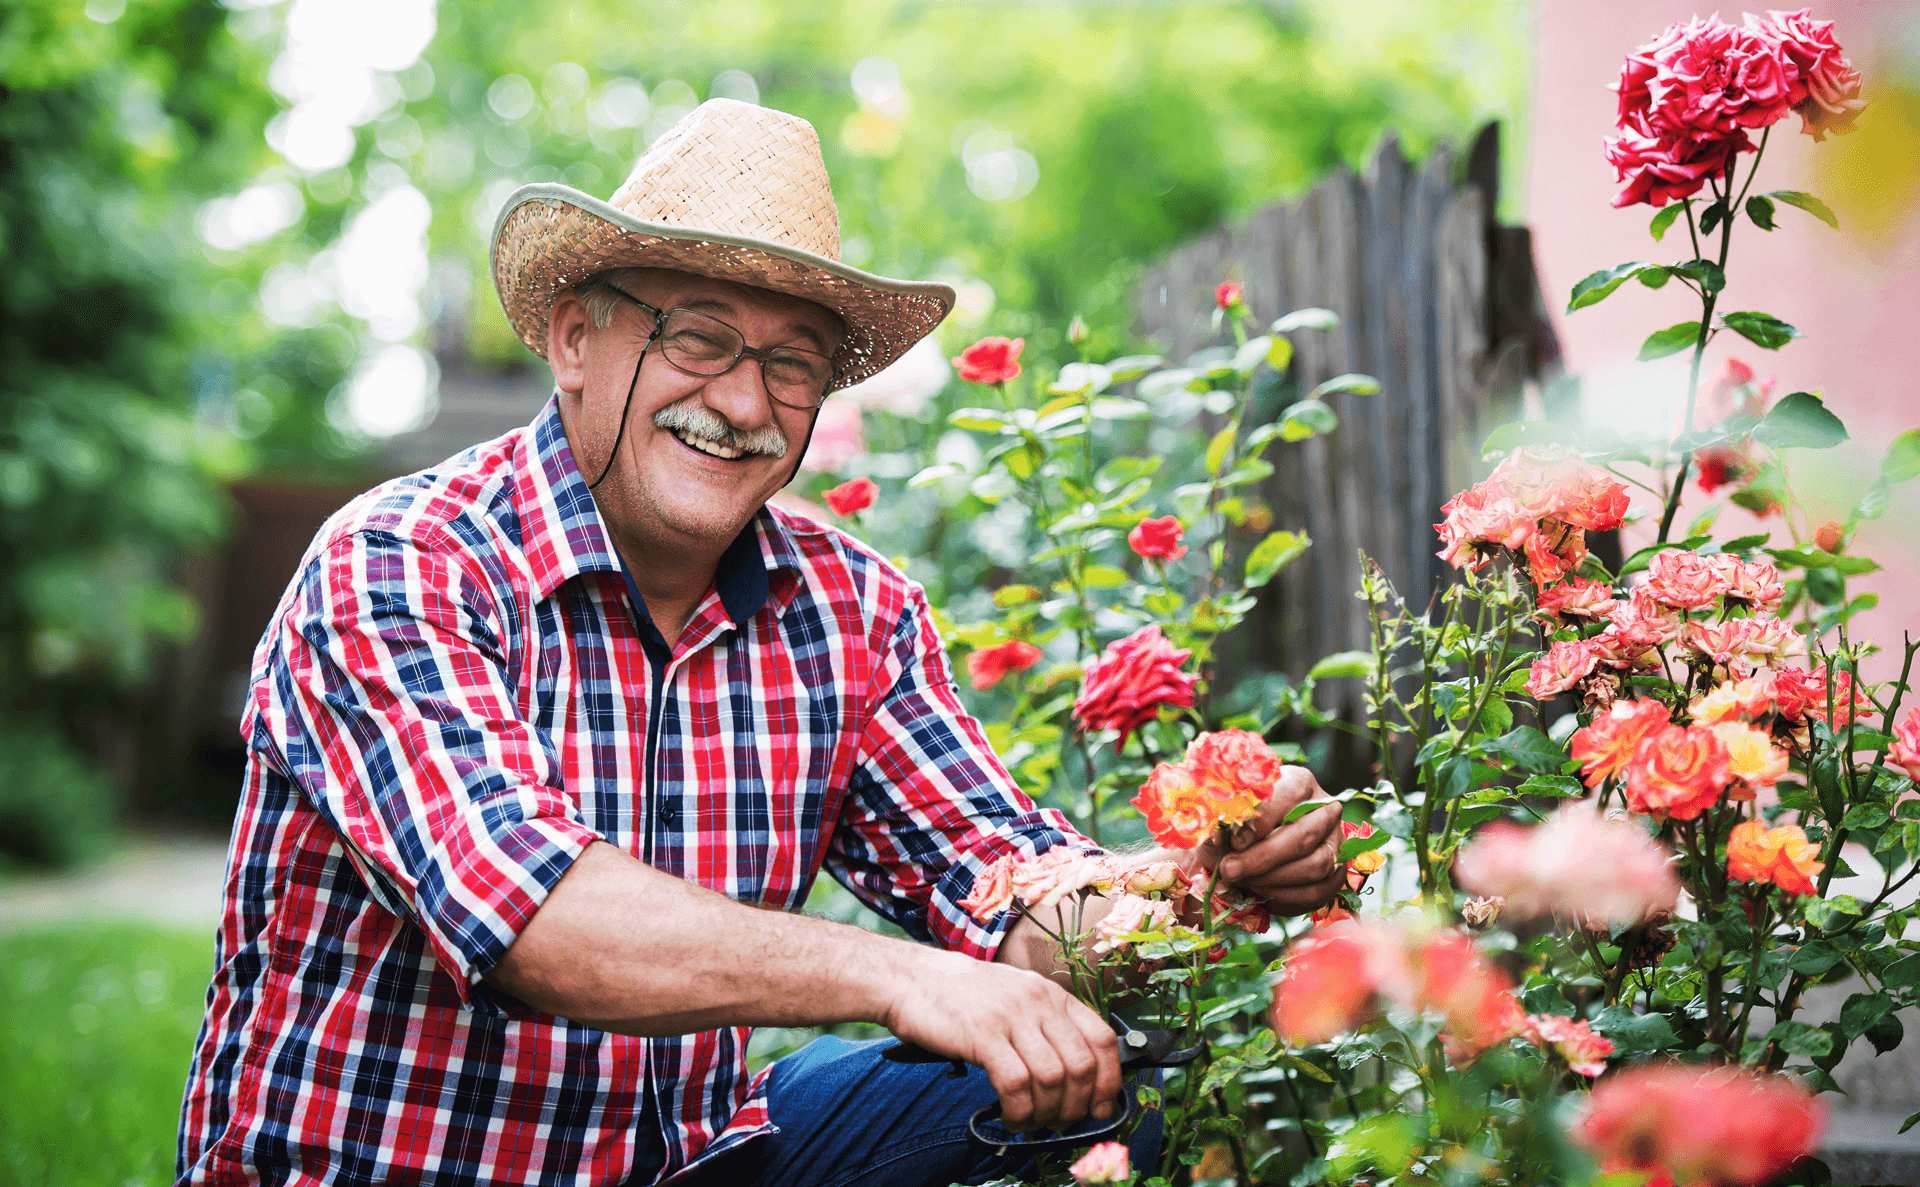 Older man smiling and gardening